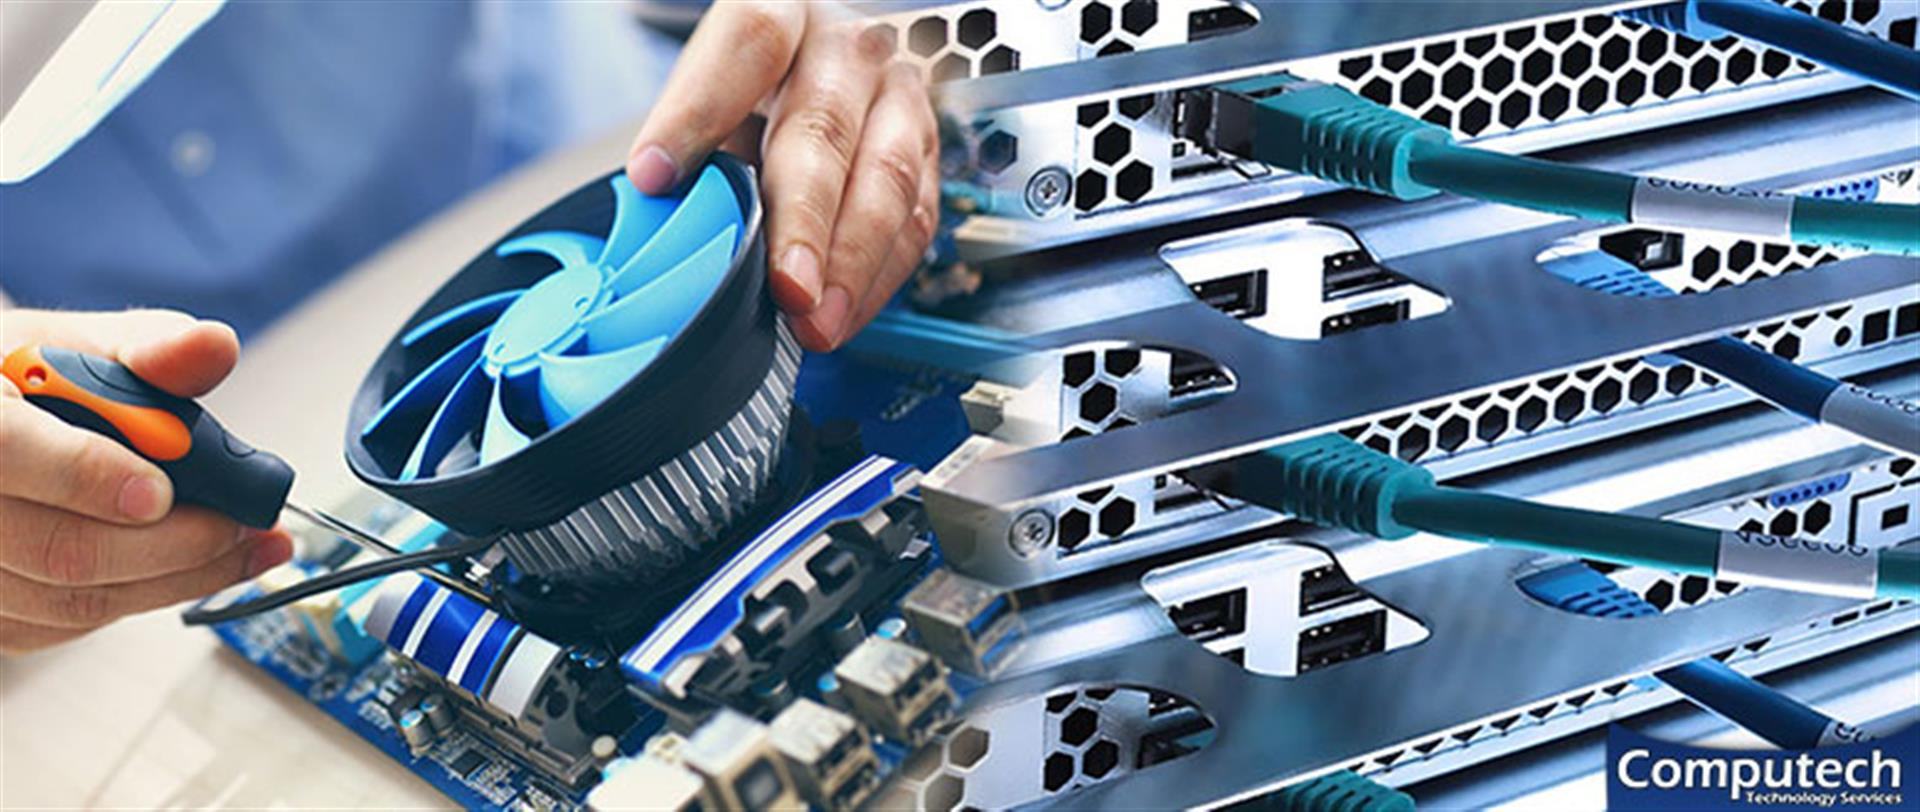 Mountain Brook Alabama Onsite PC & Printer Repairs, Networks, Telecom & Data Low Voltage Cabling Services